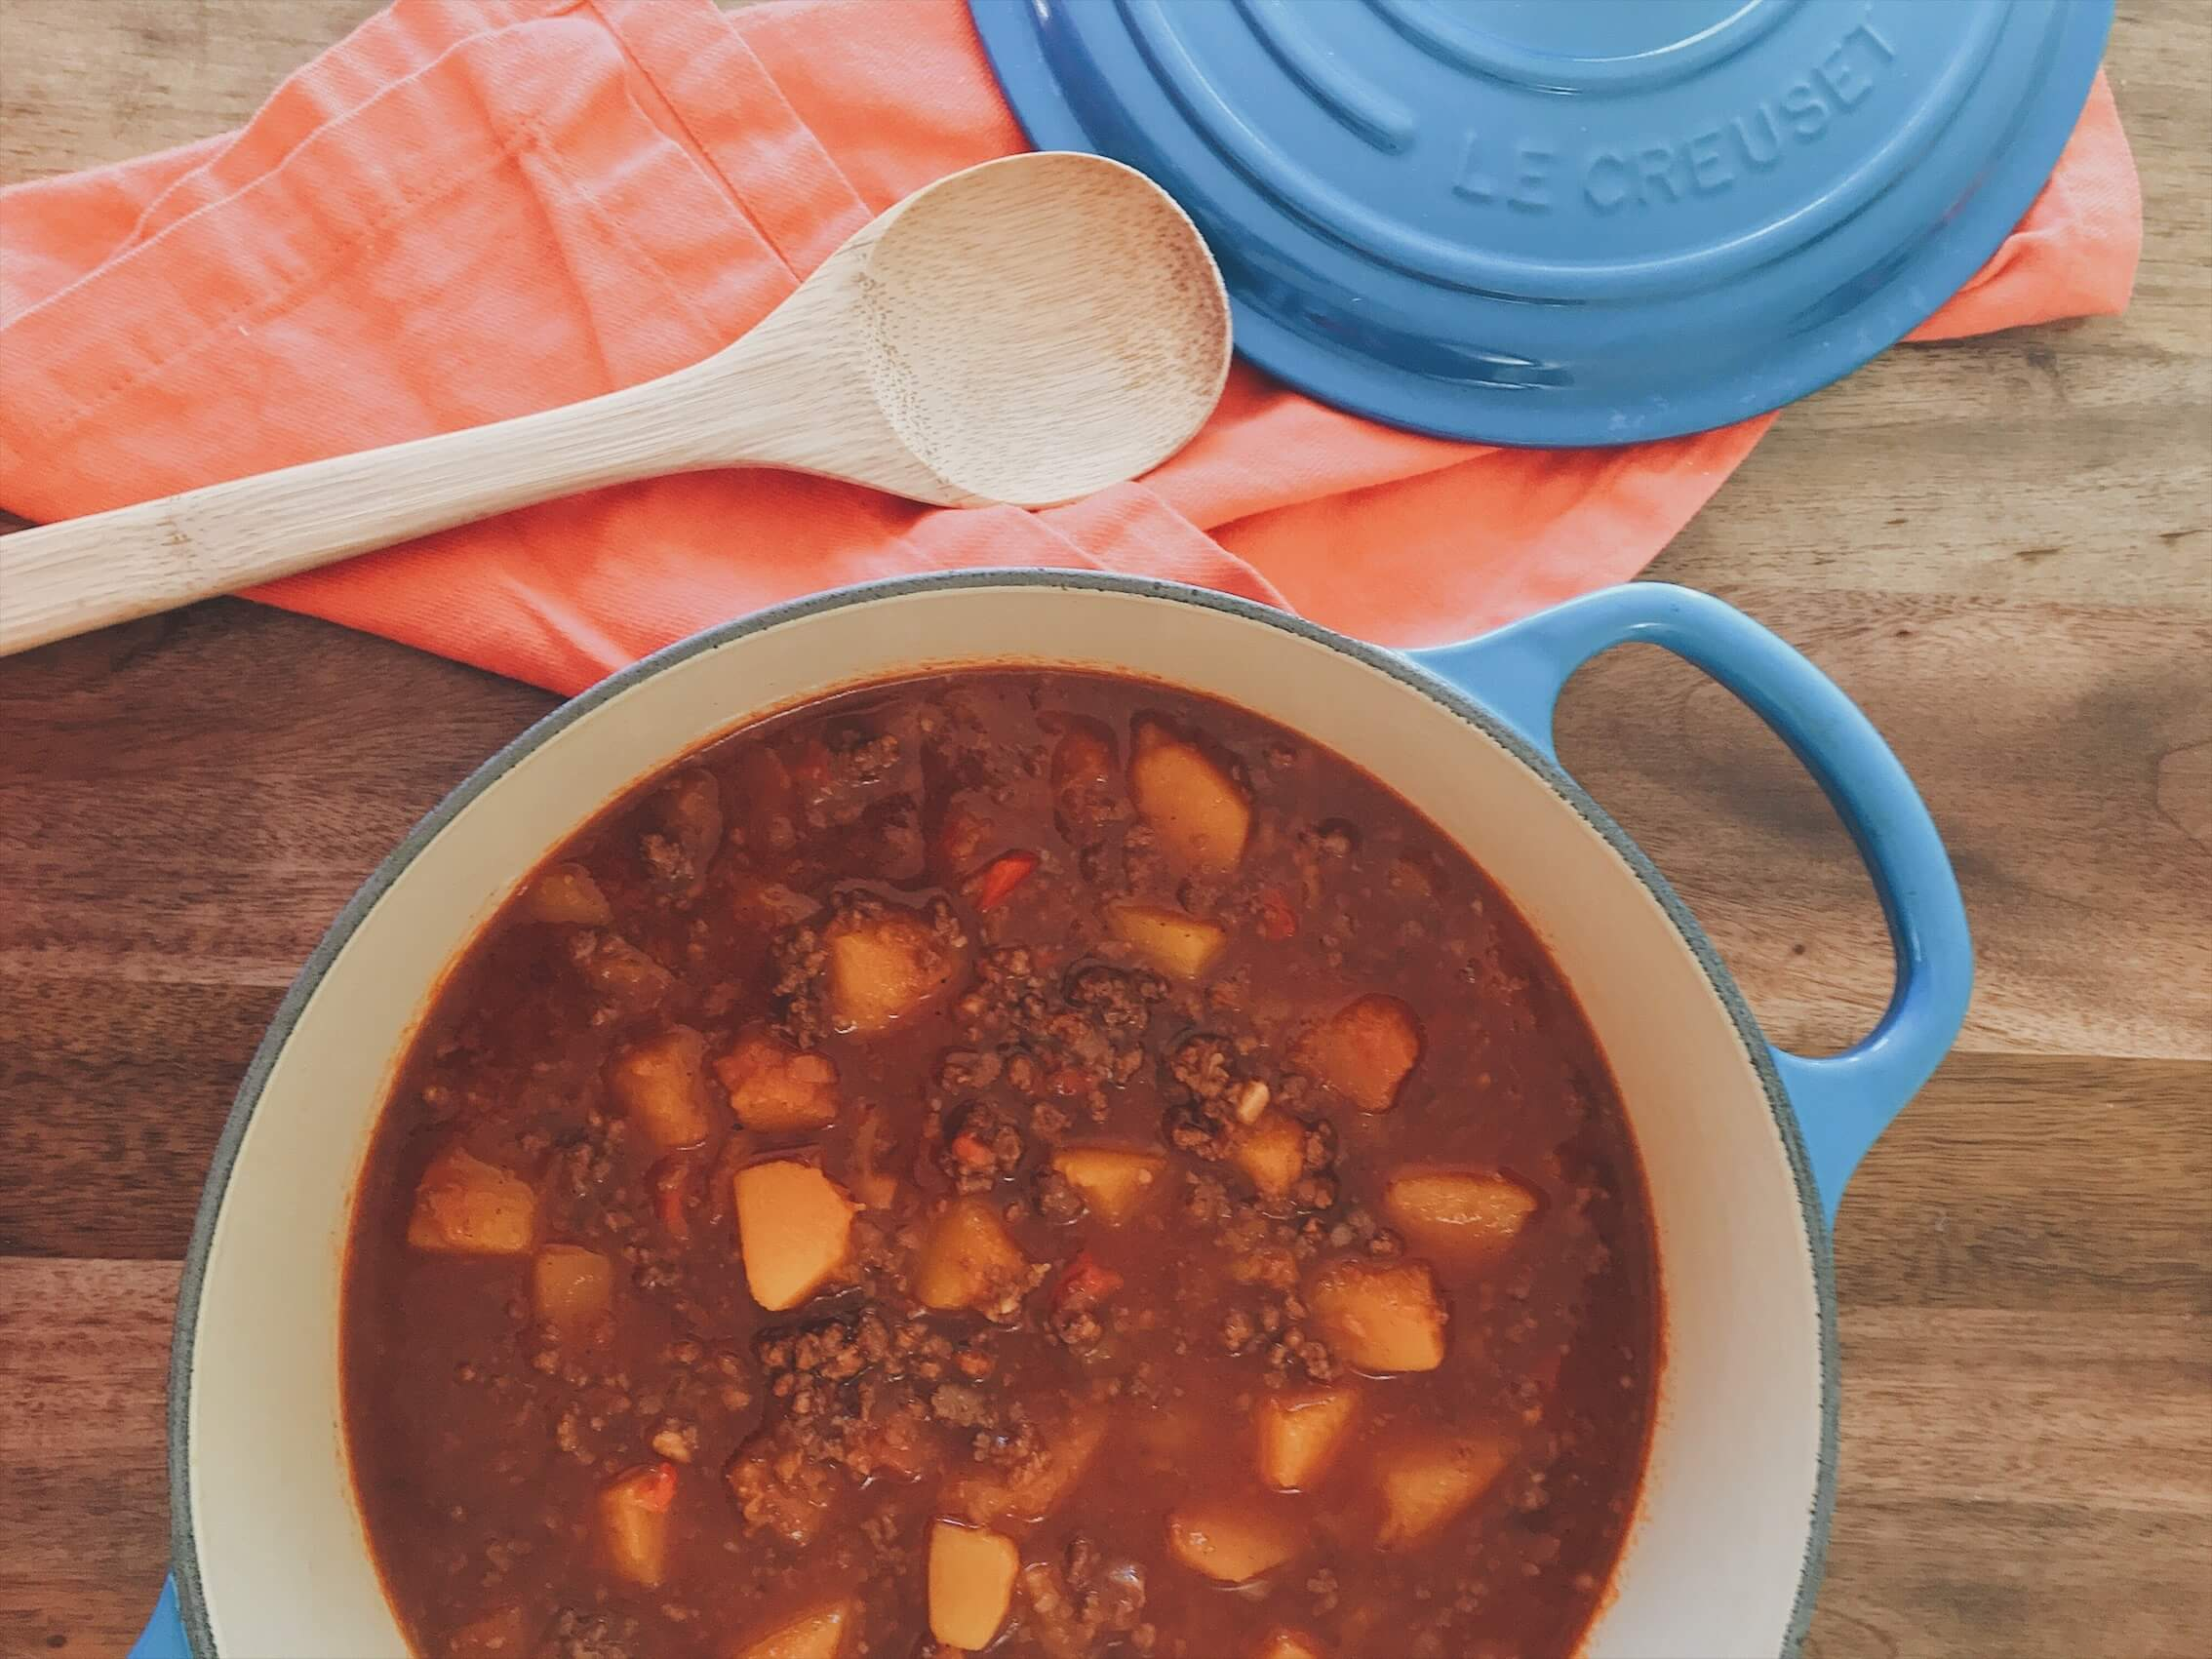 Instant Pot Butternut Squash Chili by Chartered Wellness